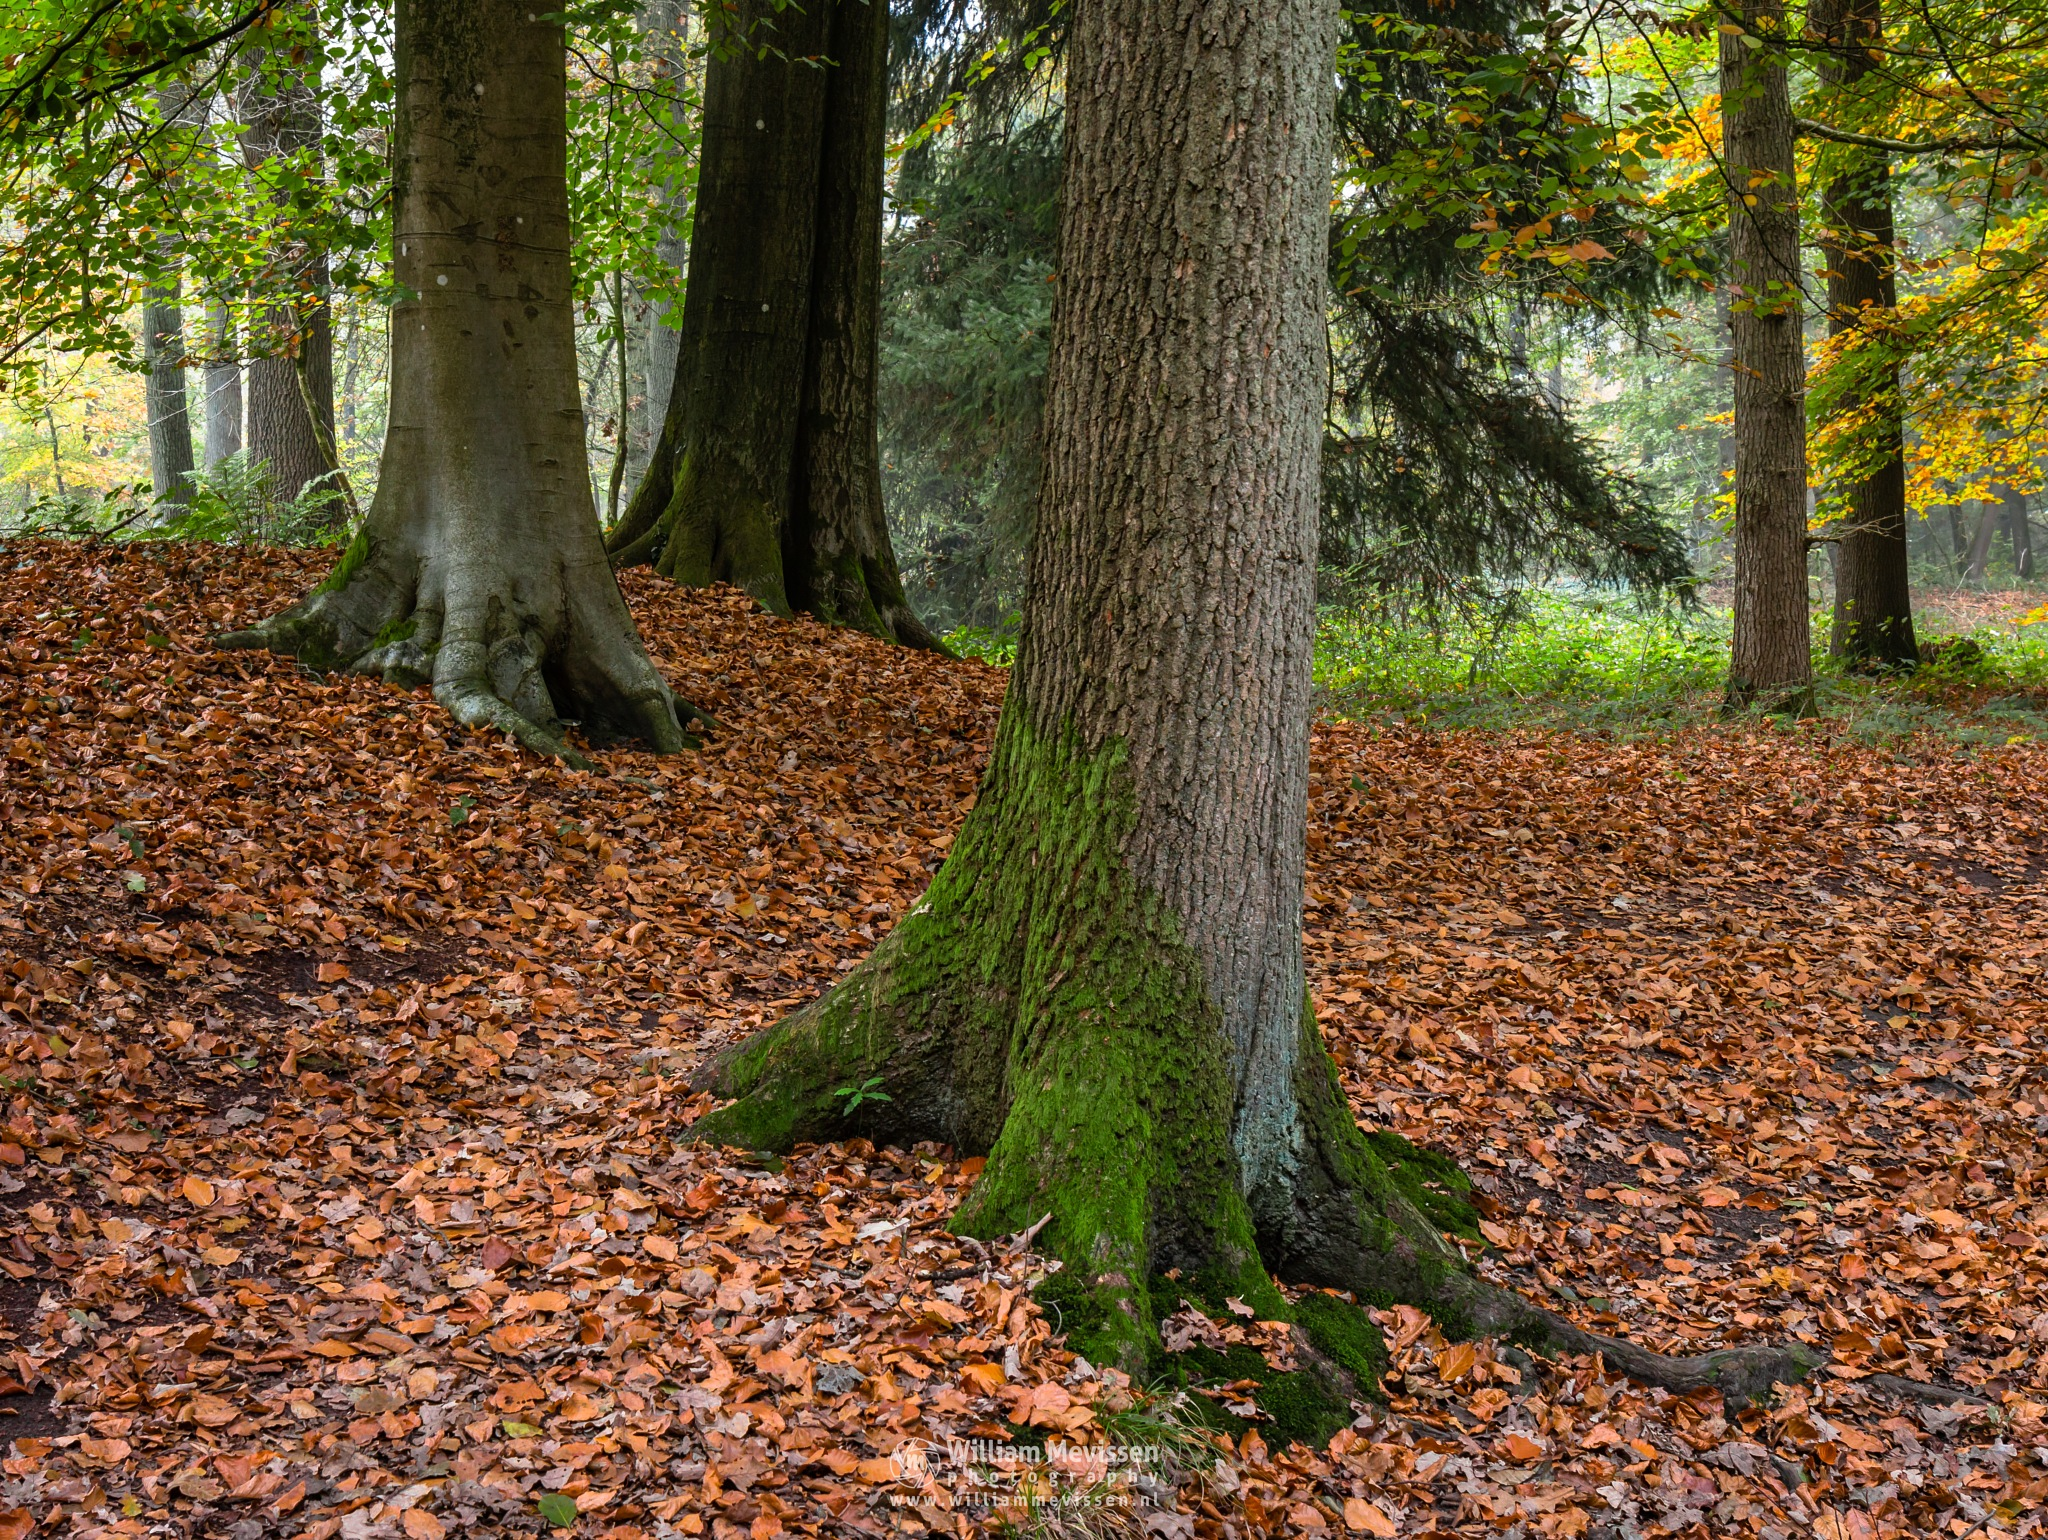 Autumn Tree Trunks by William Mevissen